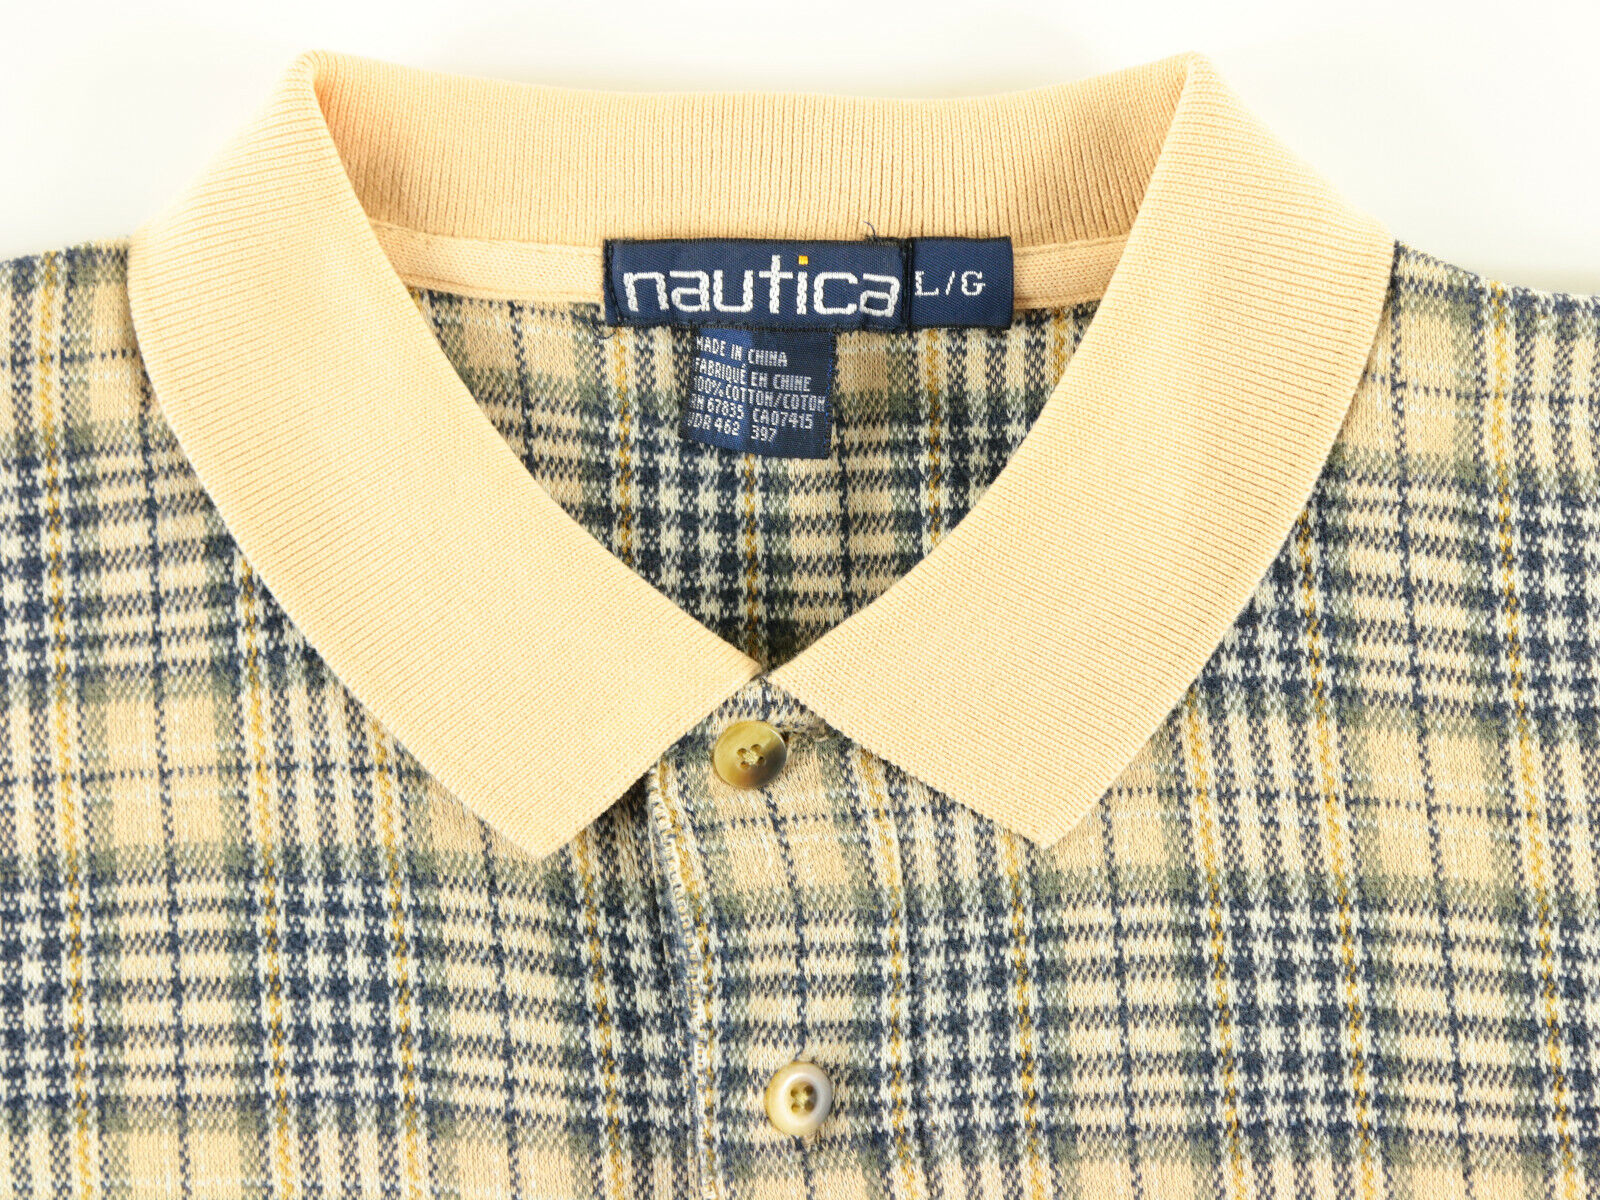 NAUTICA POLO SHIRT SIZE LARGE BEIGE GRAY NAVY BLU… - image 4